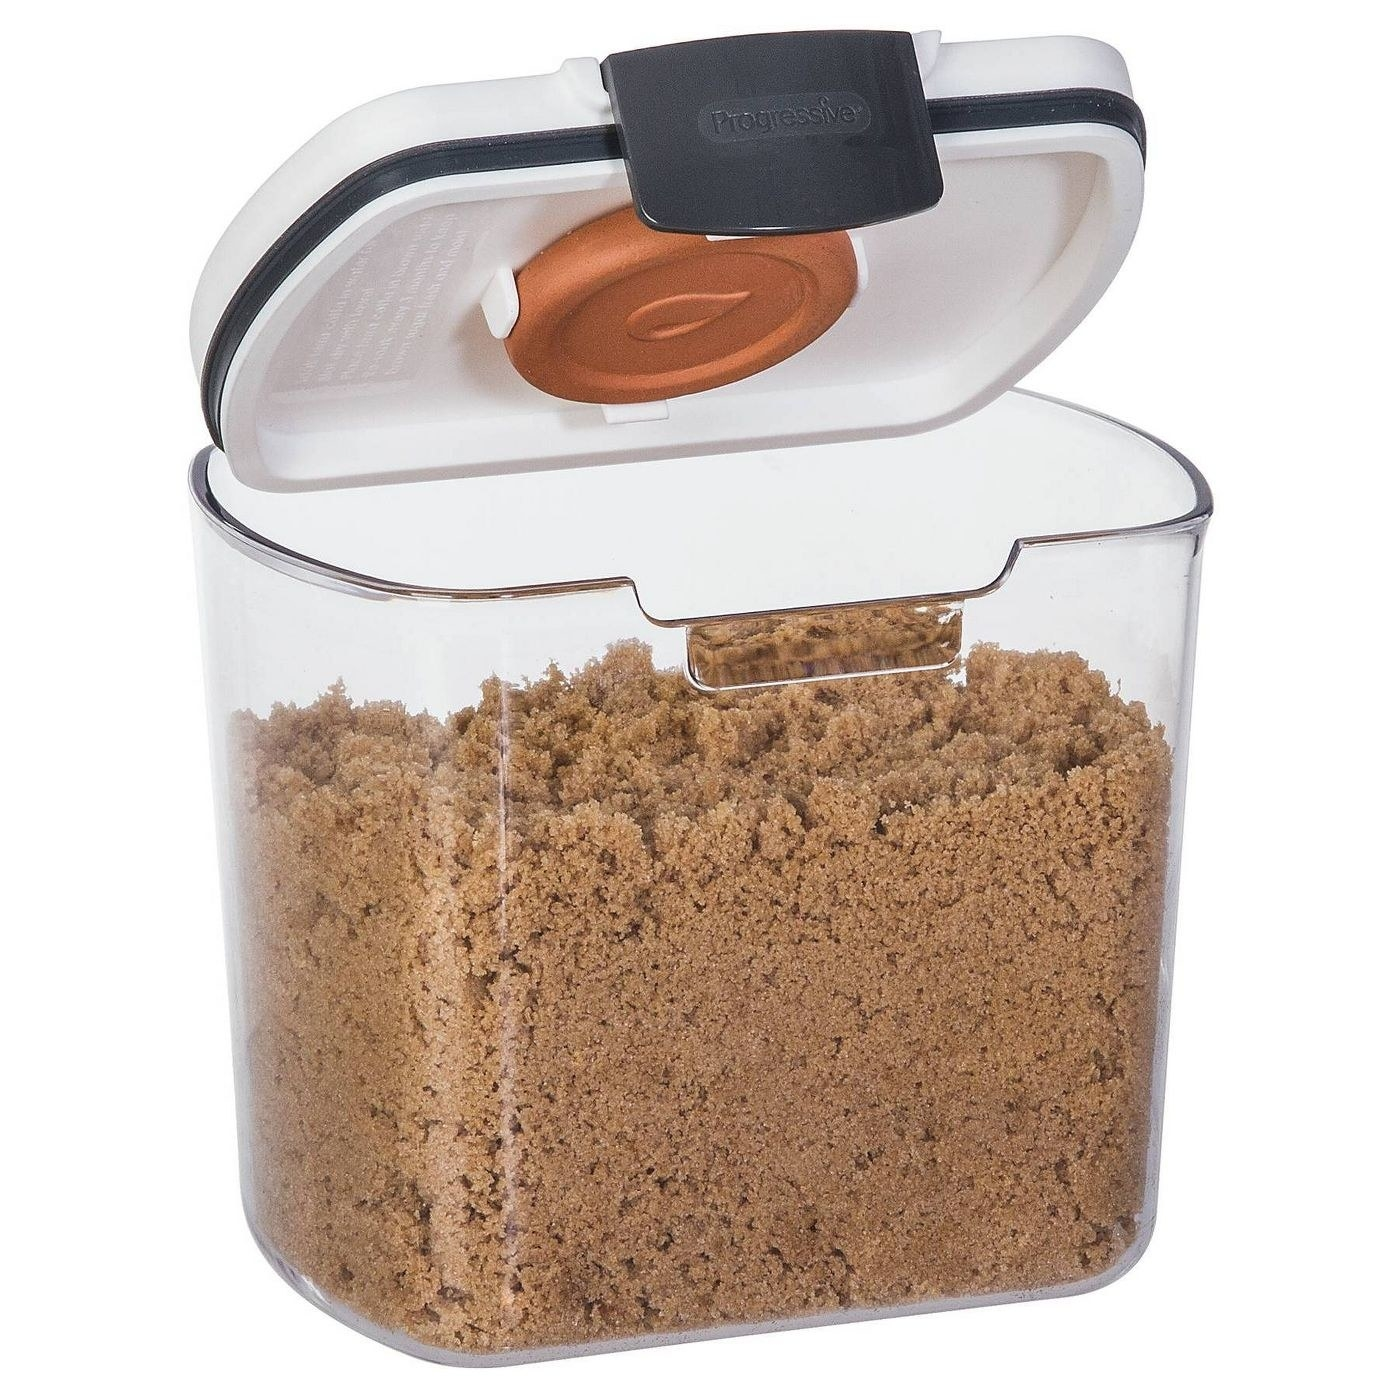 a clear container with brown sugar in it